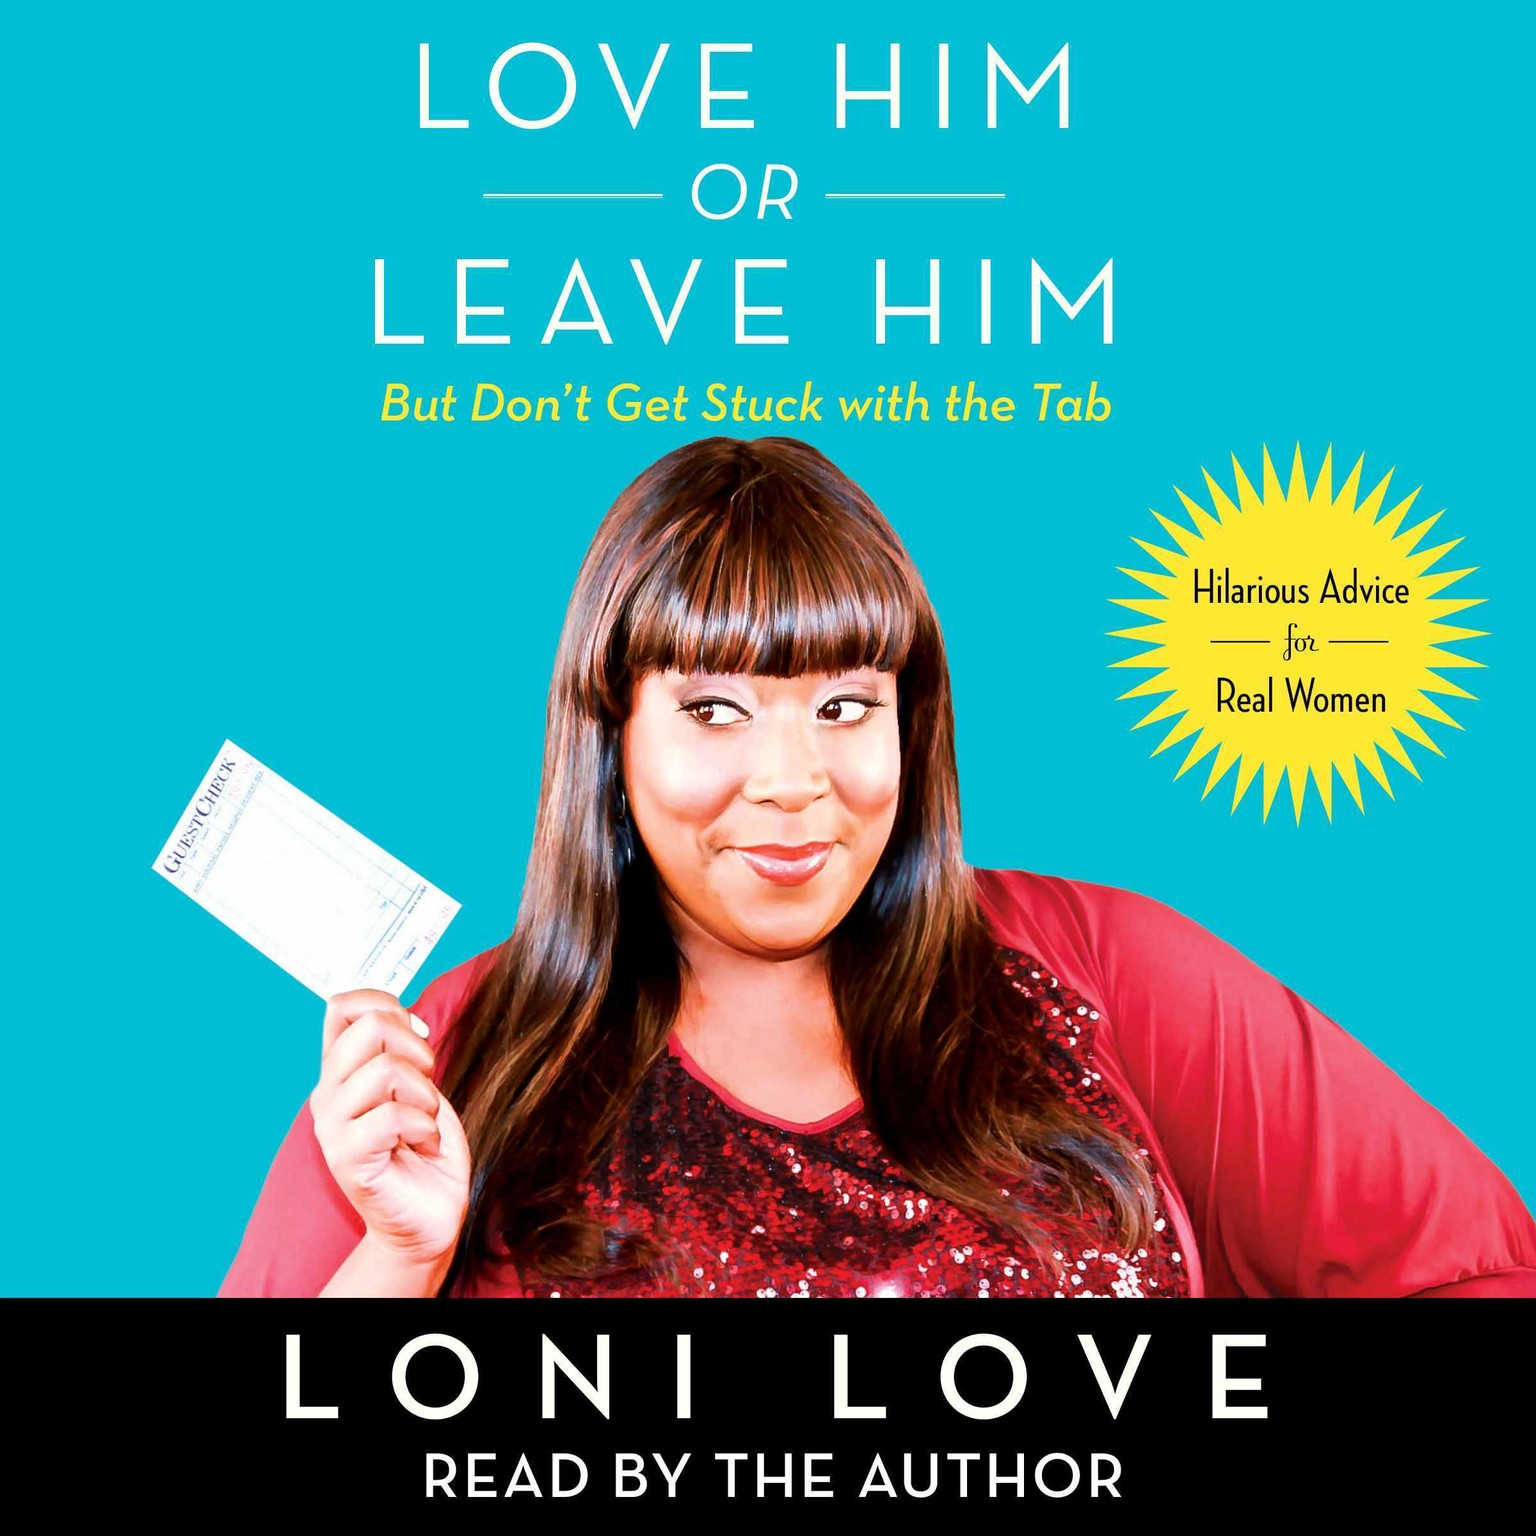 Printable Love Him or Leave Him, but Don't Get Stuck with the Tab: Hilarious Advice for Real Women Audiobook Cover Art